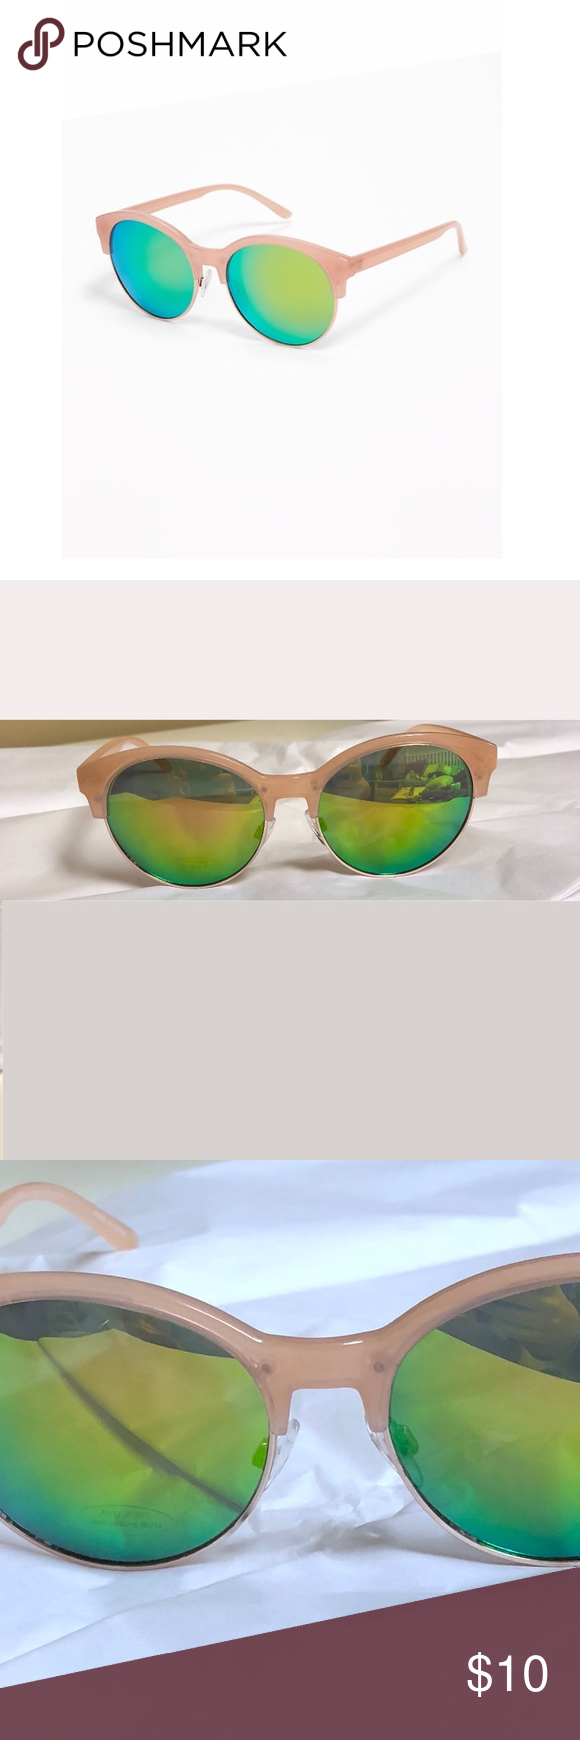 809cf955023 Vintage Pink Half Frame Sunglasses The retro-inspired half-frames make  these a real blast from the past